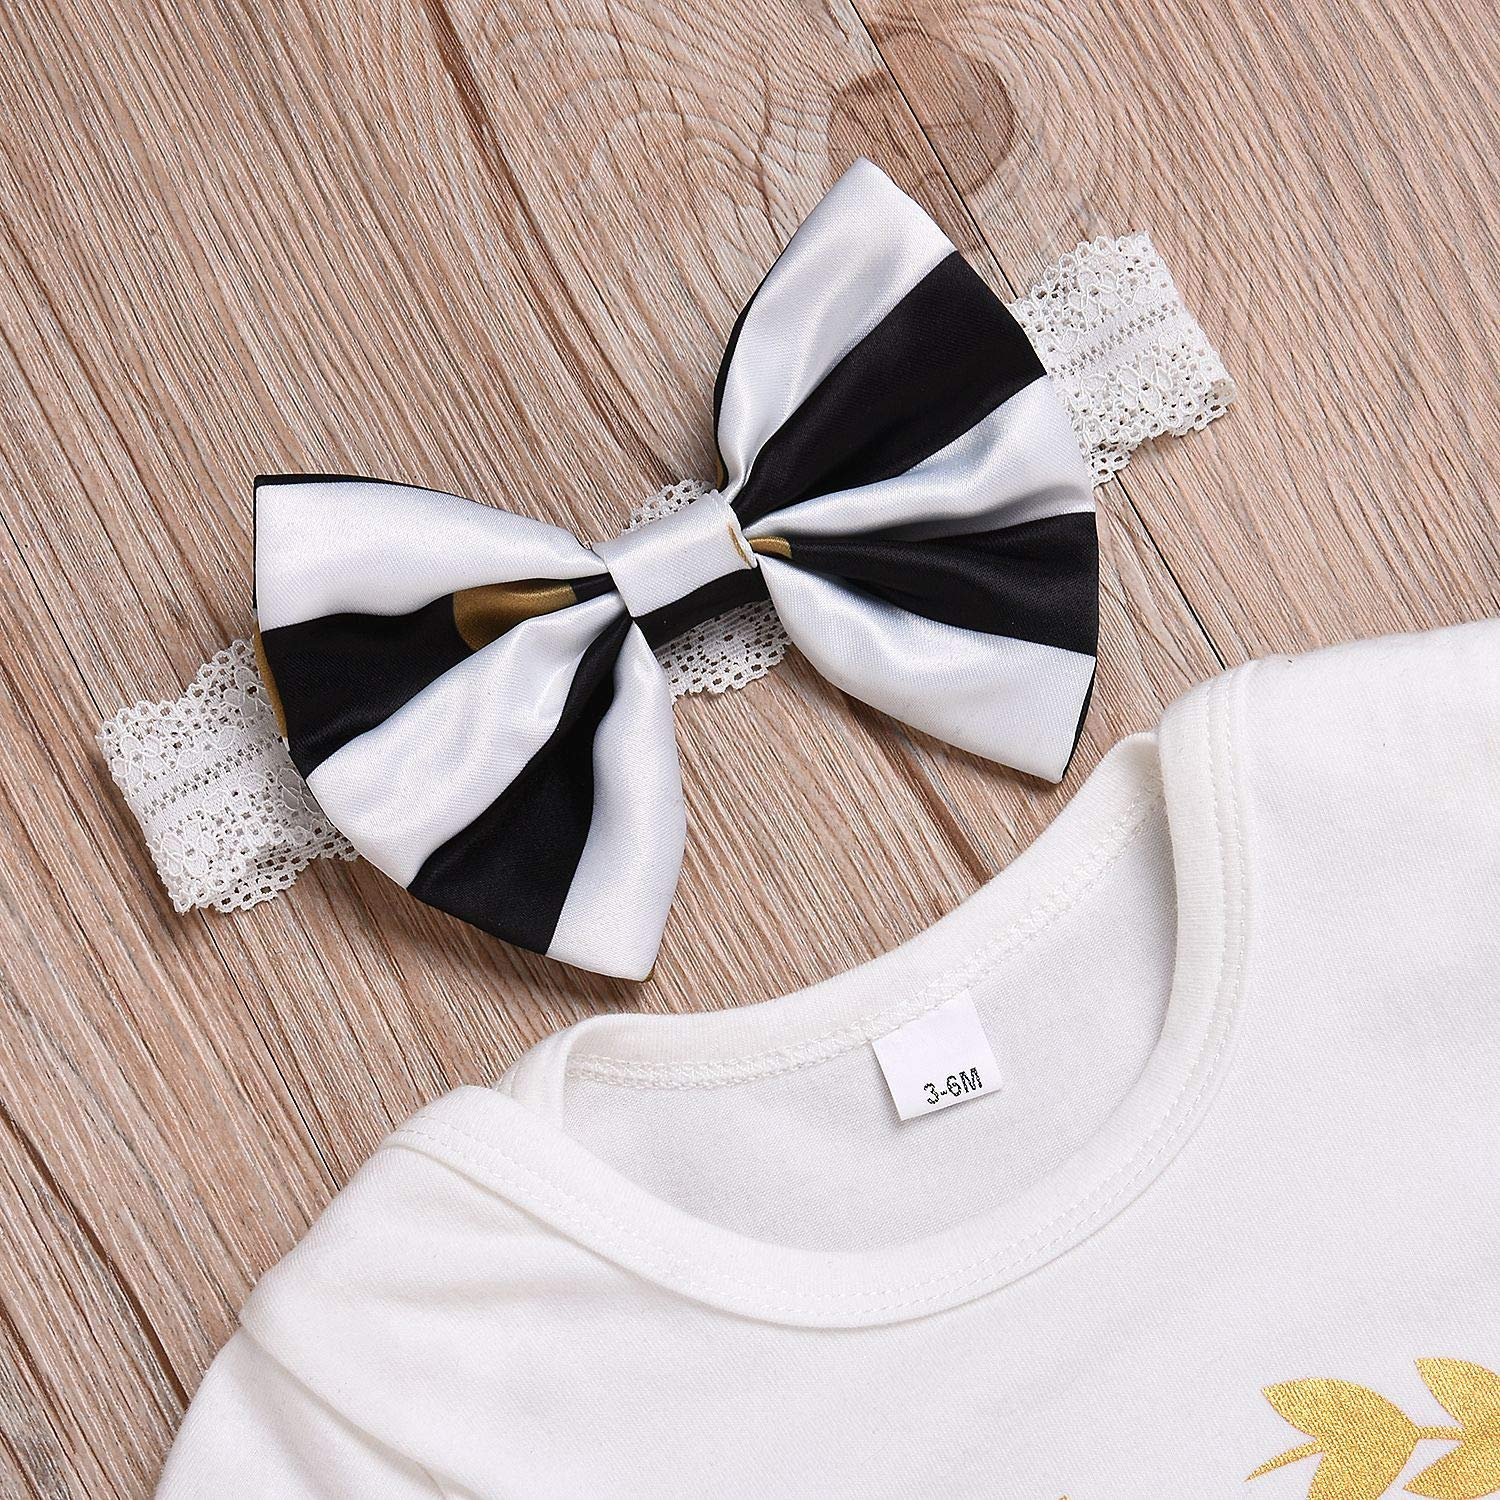 csdsfy Infant Baby Girl Clothes Little Sister Girl Letter Print Romper Floral Bloomers with Headband 3PCs Toddler Outfits Set